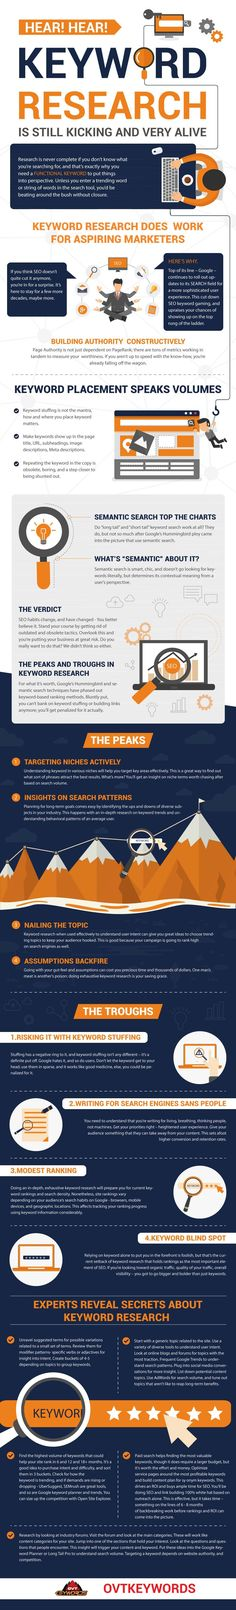 Keyword Research & SEO: All You Need to Know for Higher Google Rankings [Infographic]